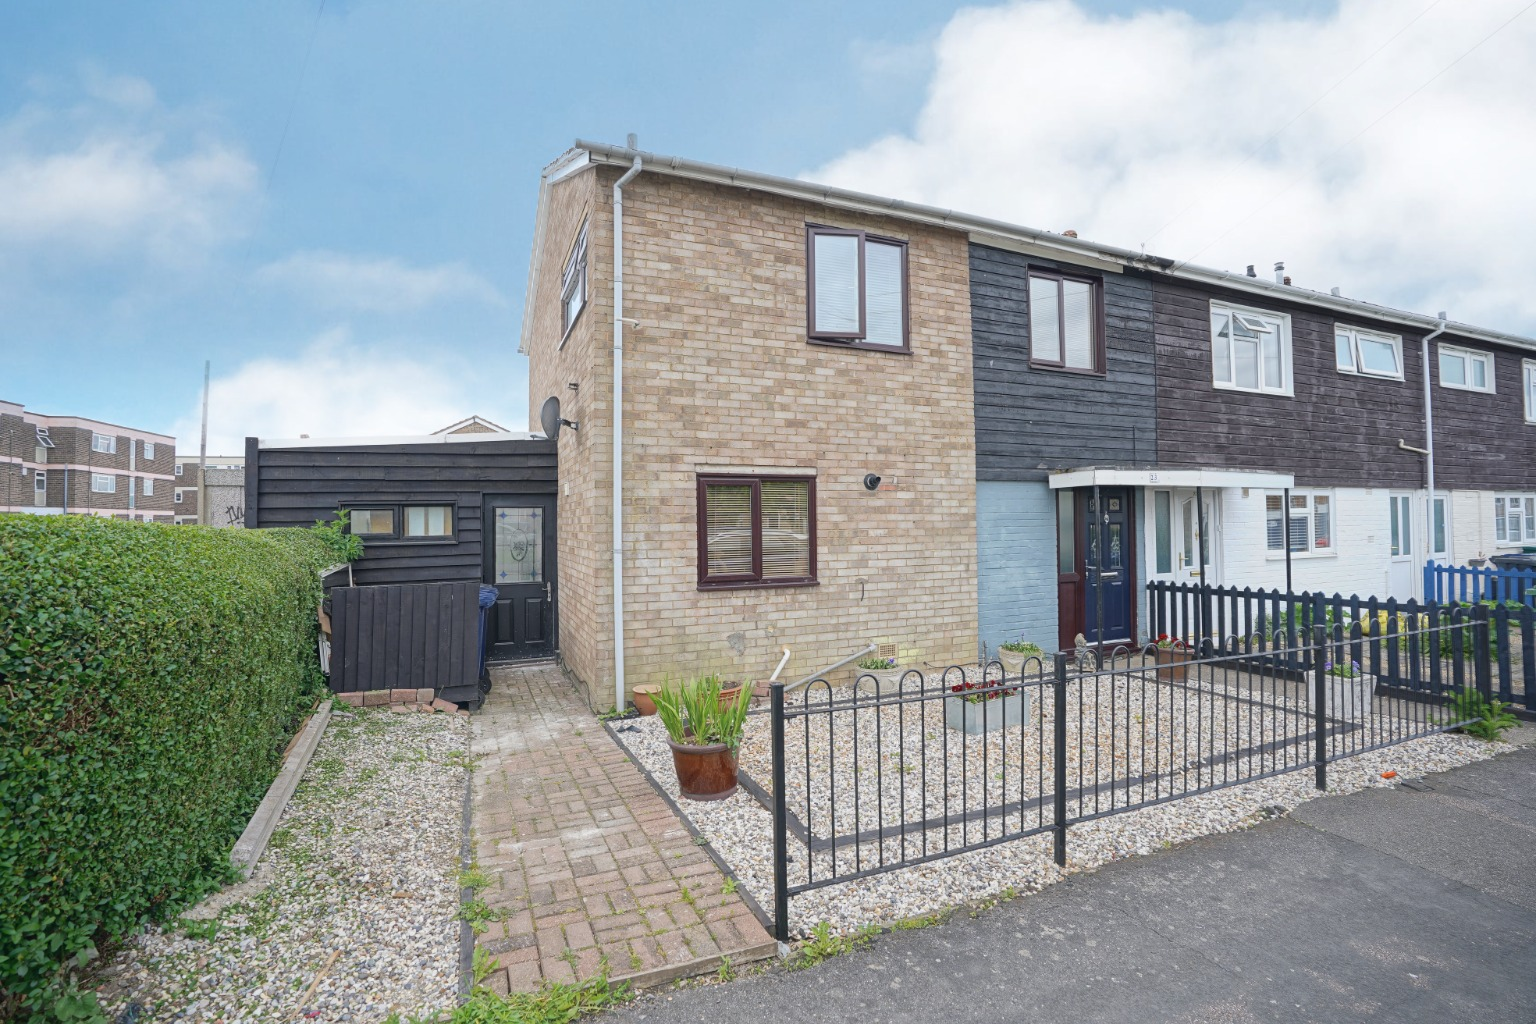 3 bed terraced house for sale in Wintringham Road, St. Neots  - Property Image 1